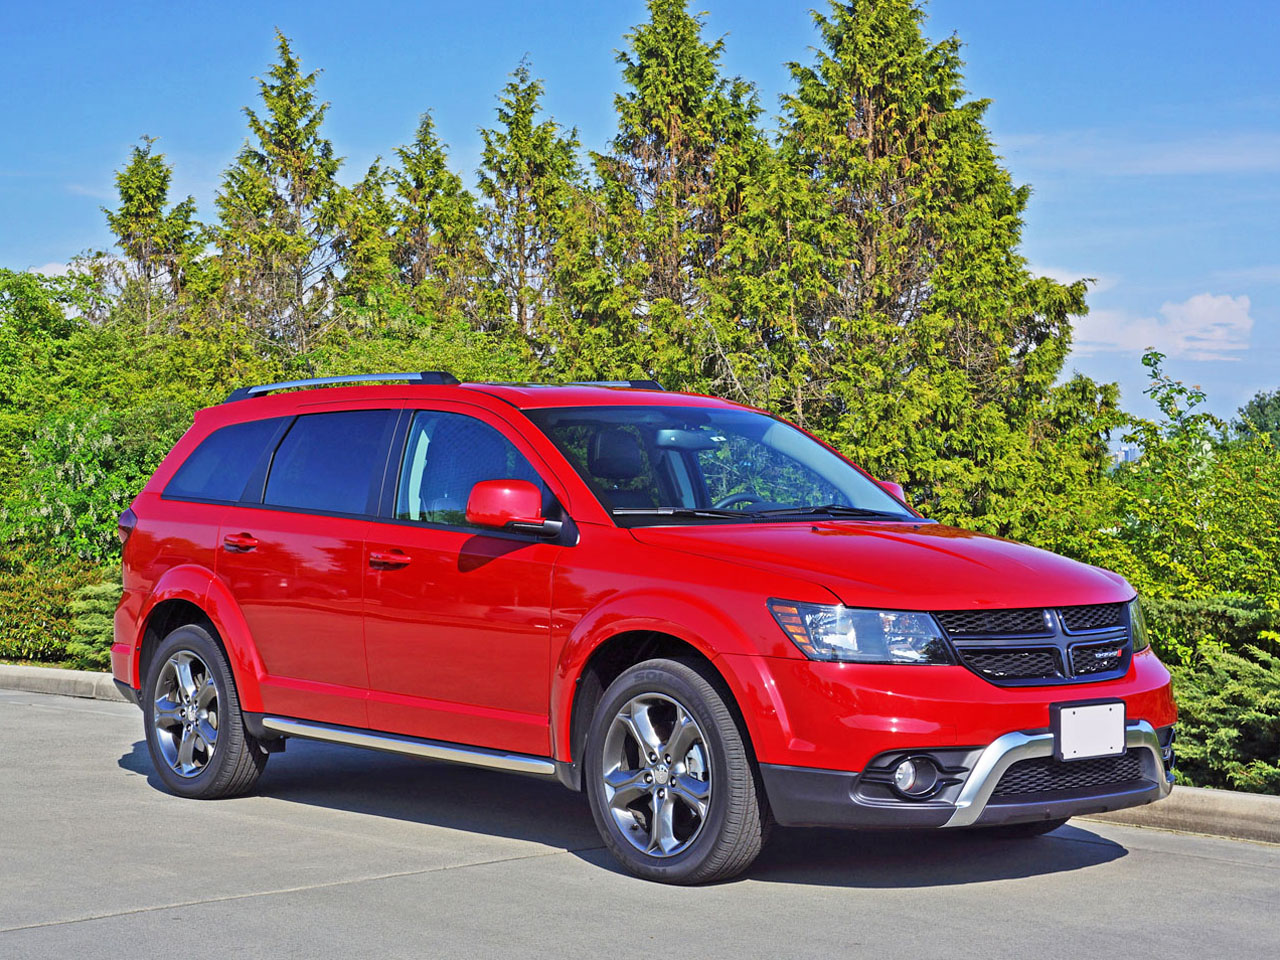 2015 dodge journey crossroad v6 awd road test review carcostcanada. Black Bedroom Furniture Sets. Home Design Ideas